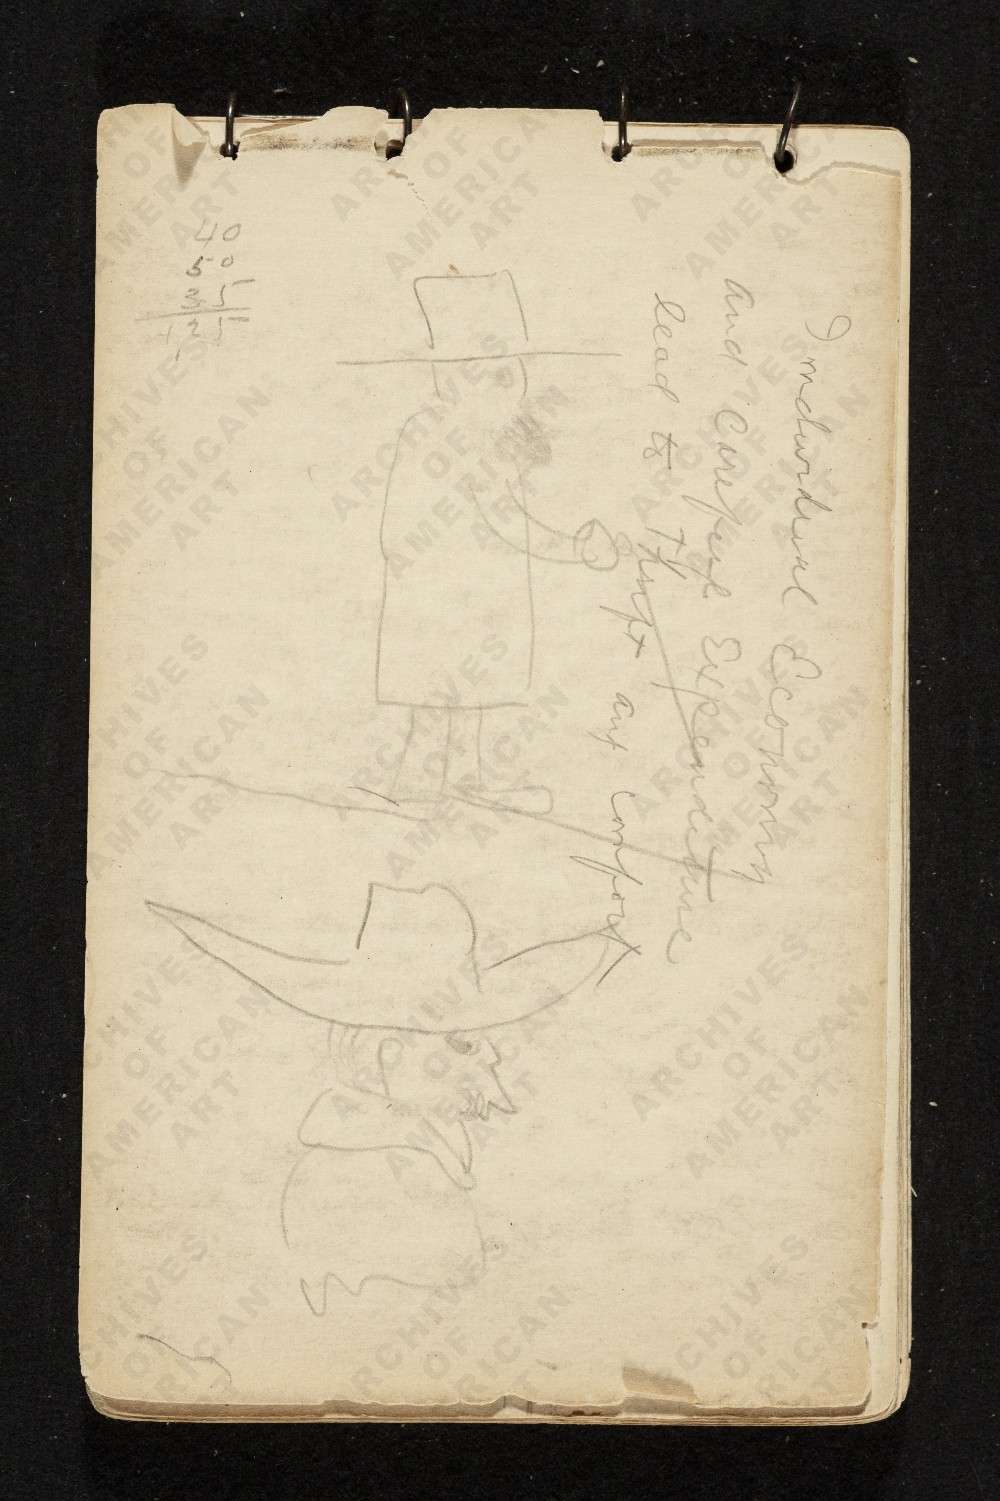 Image for sketchbook page 59